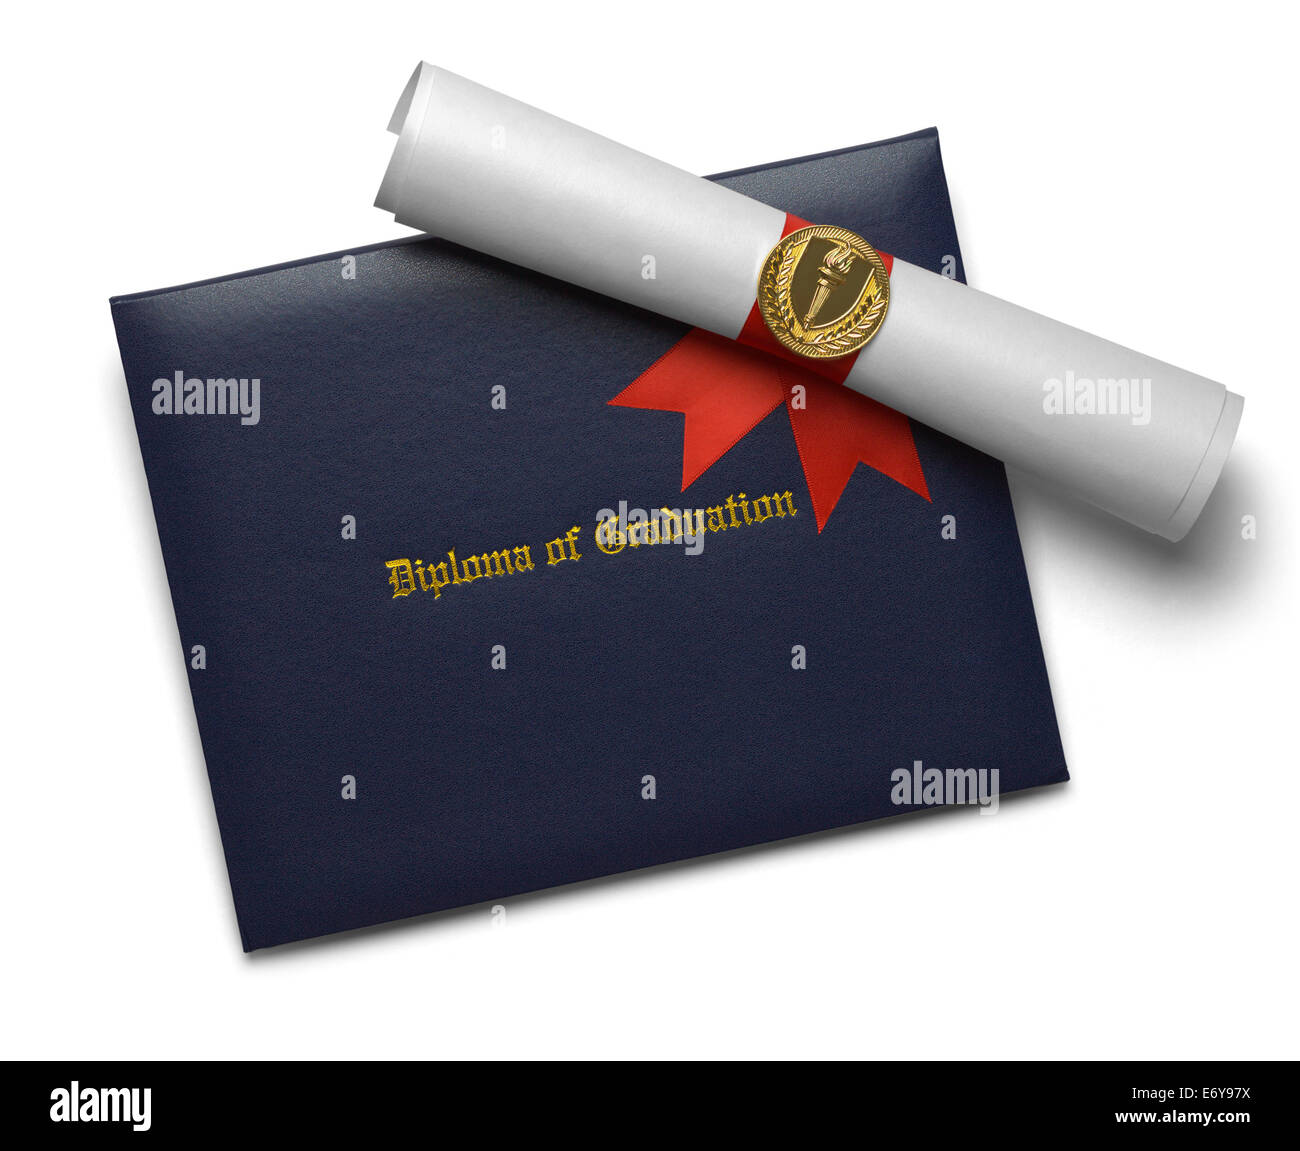 Blue Diploma of Graduation Cover with Degree Scroll and Torch Medal Isolated on White Background. - Stock Image